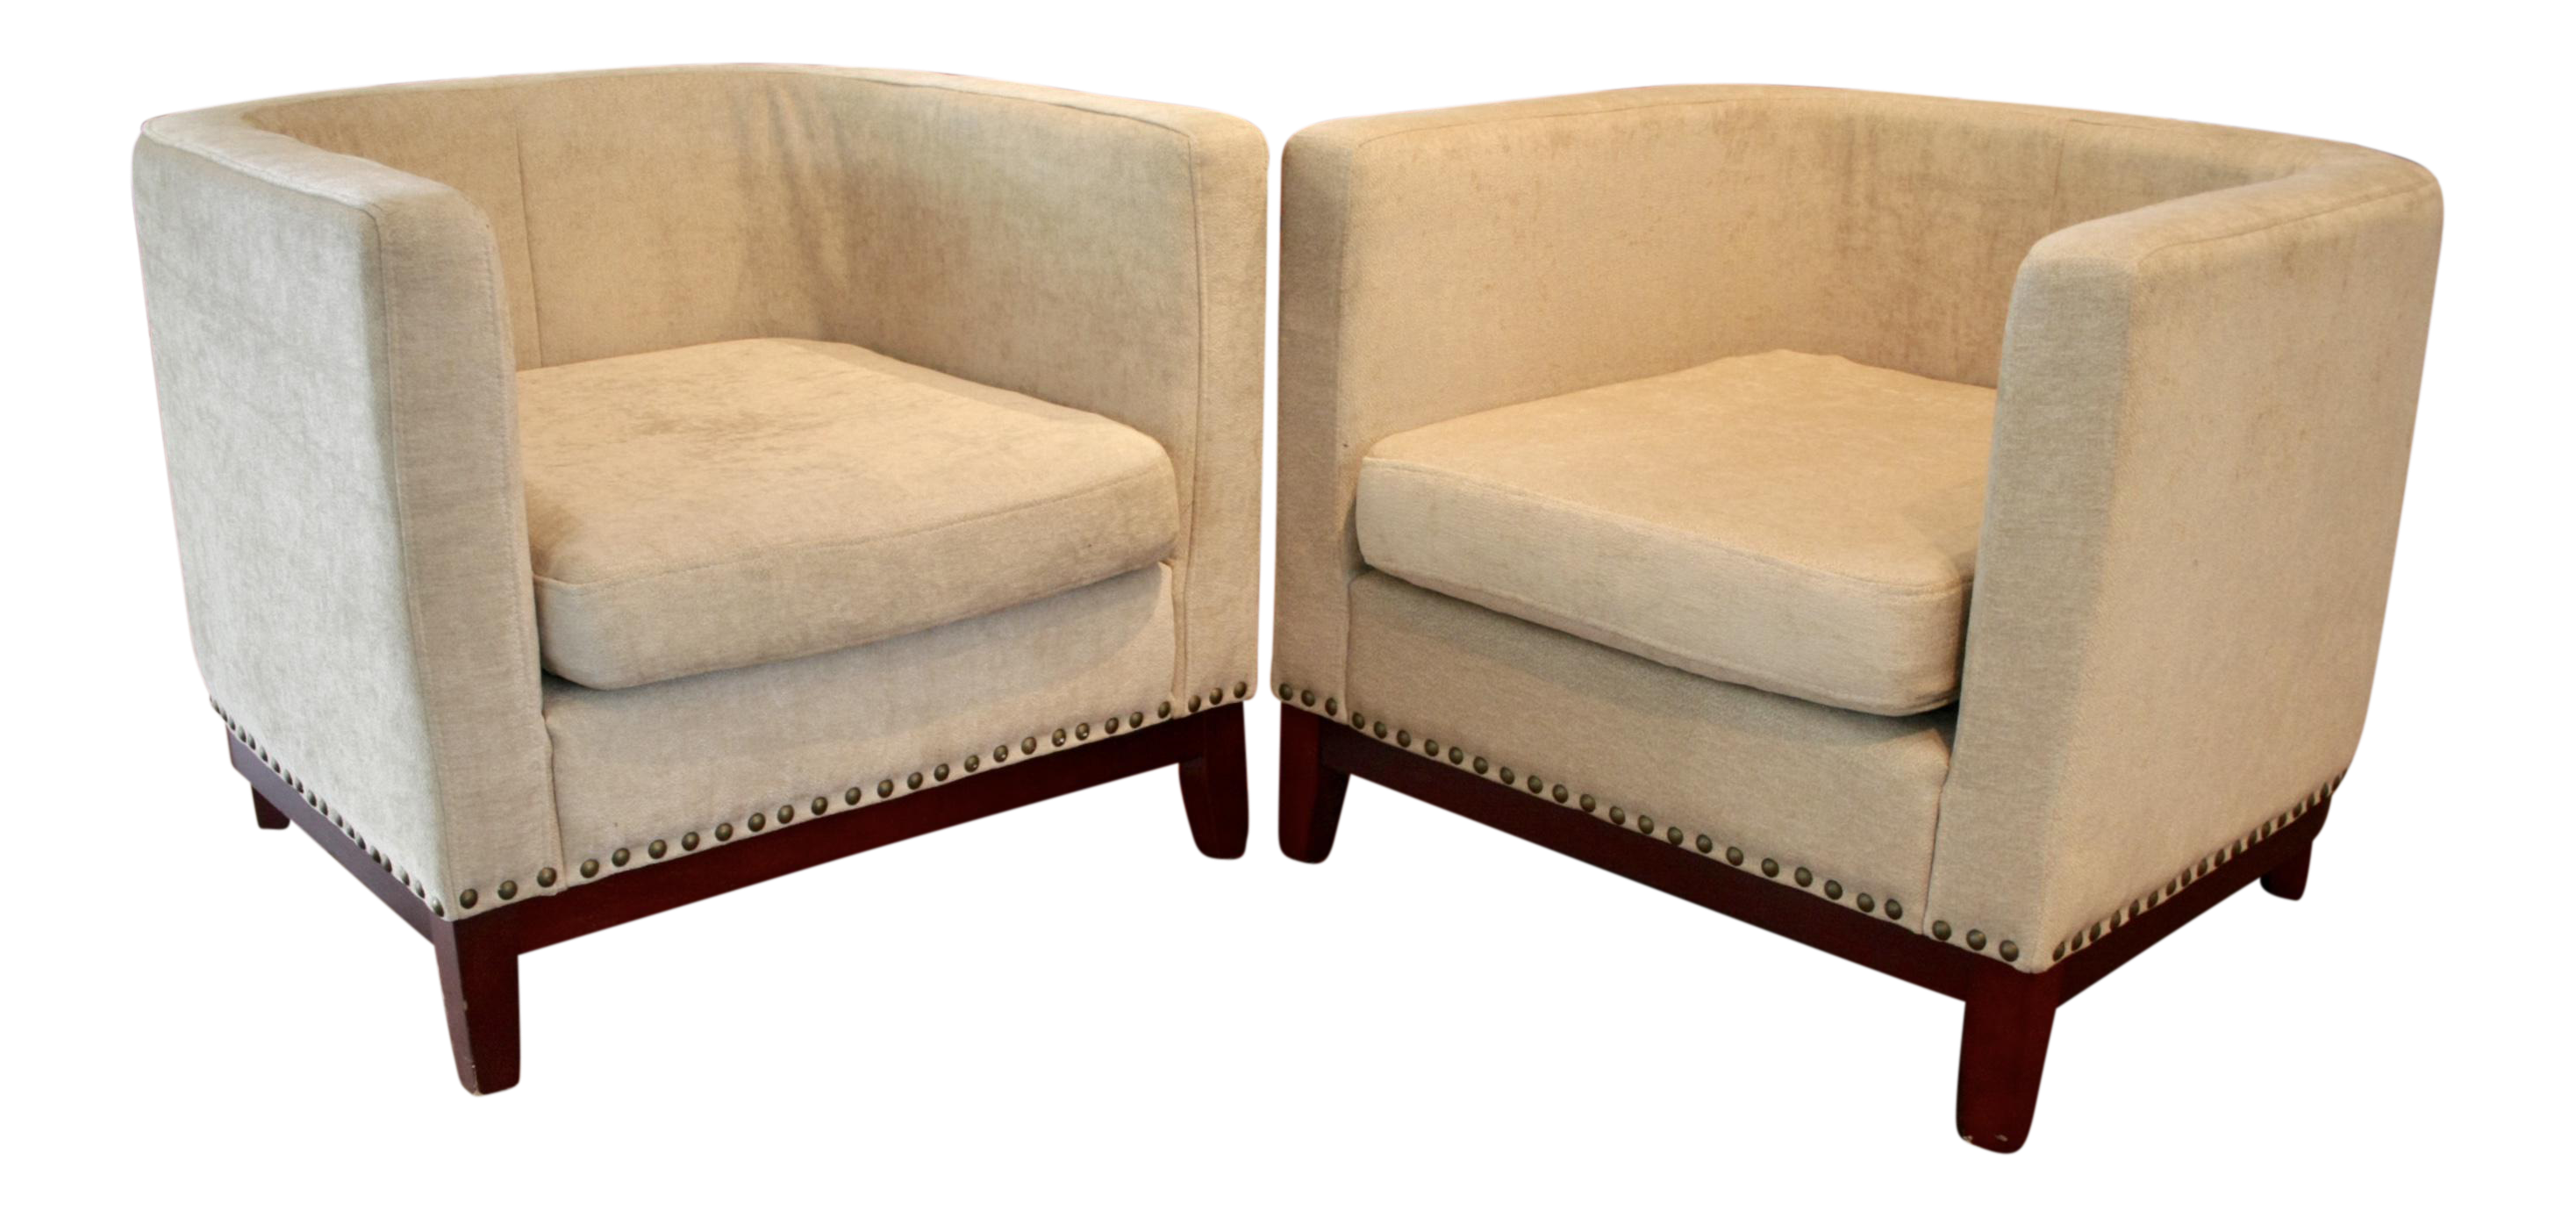 Curved lounge chairs a pair chairish for Curved lounge